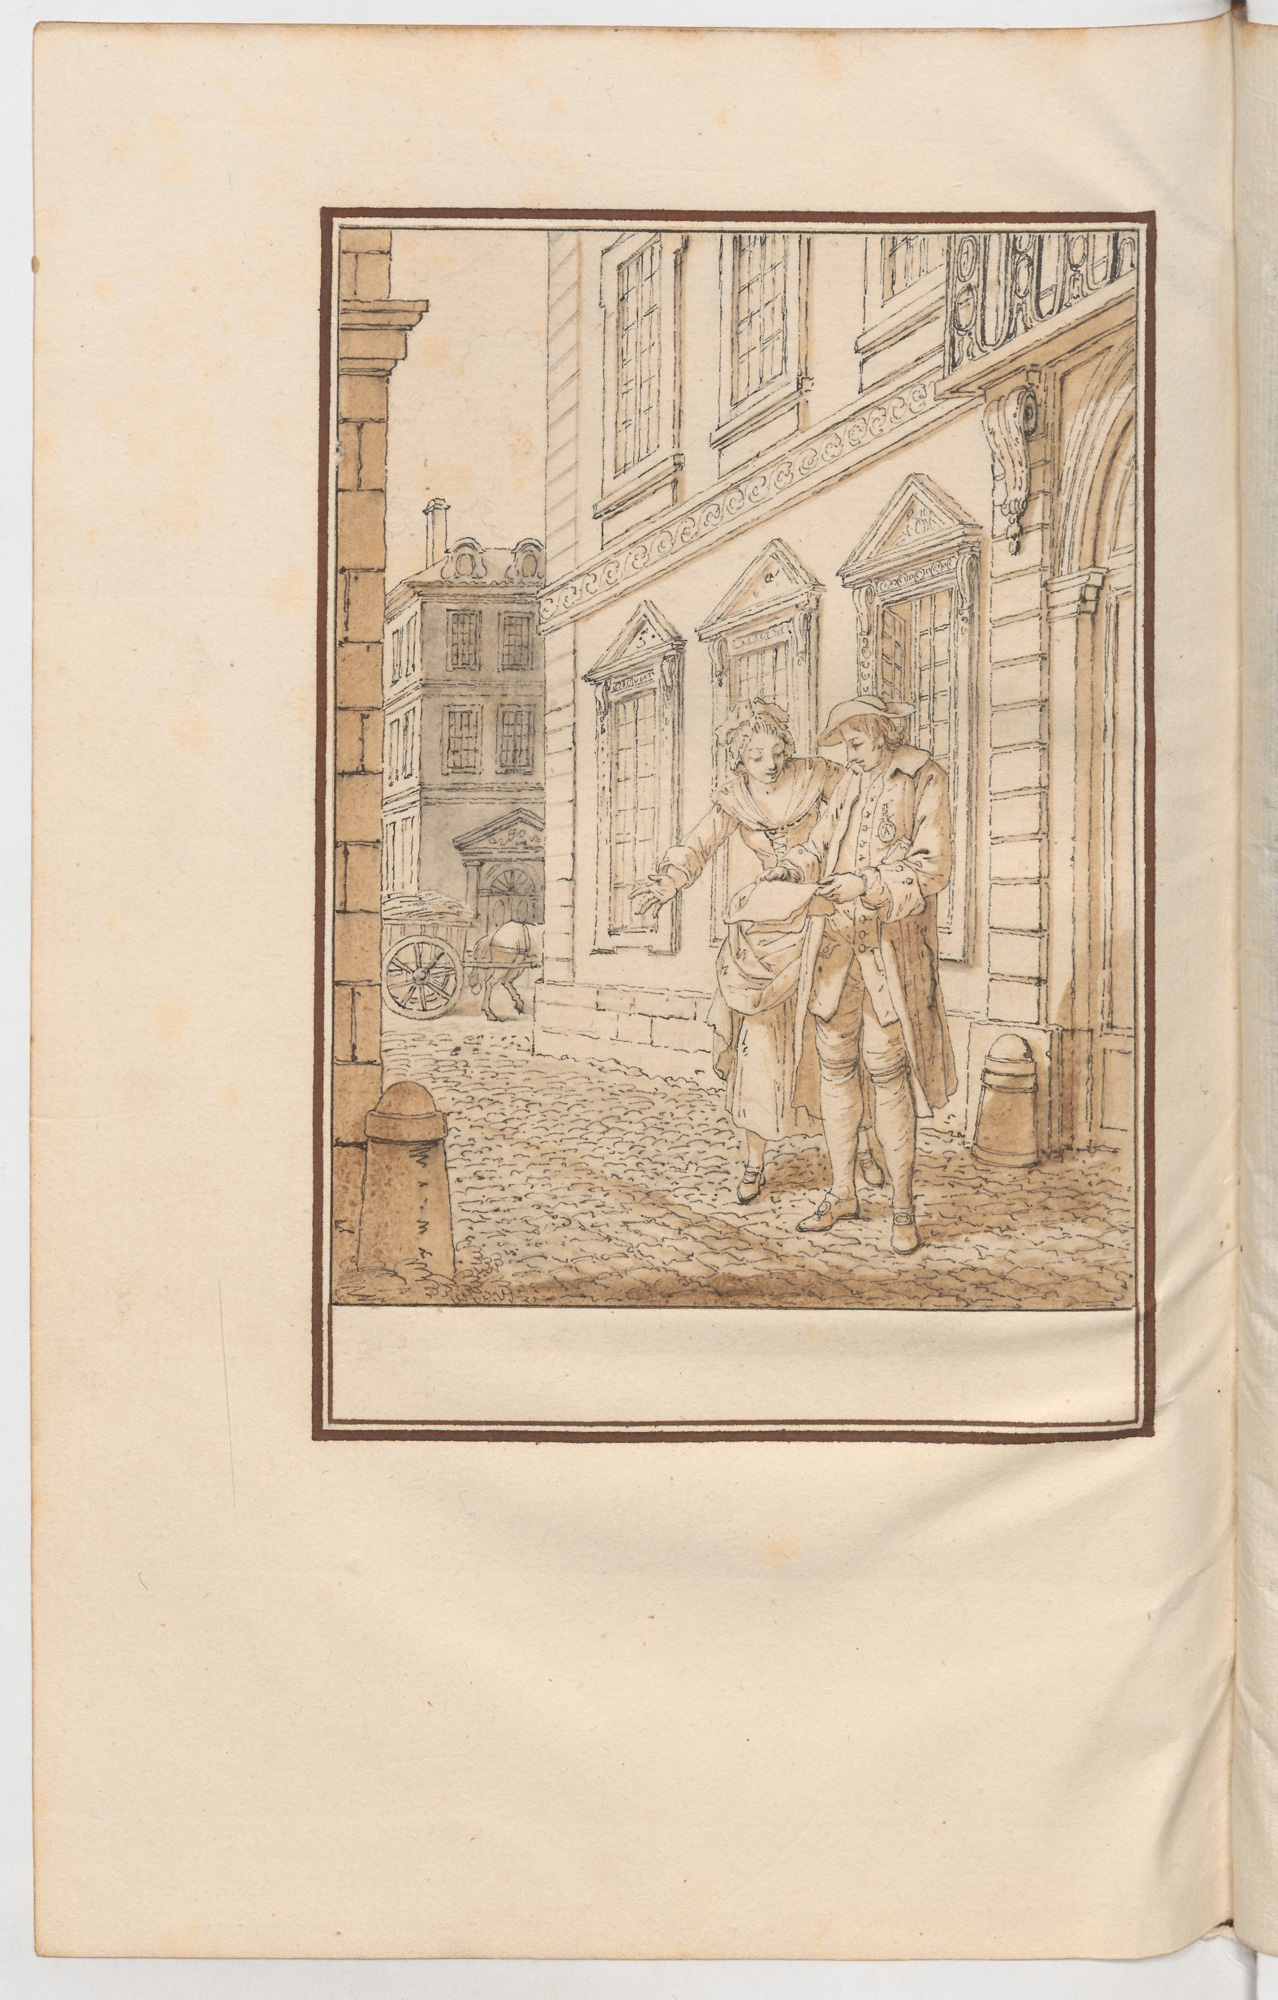 S.4.24 L'heureuse loterie, Chantilly, Image